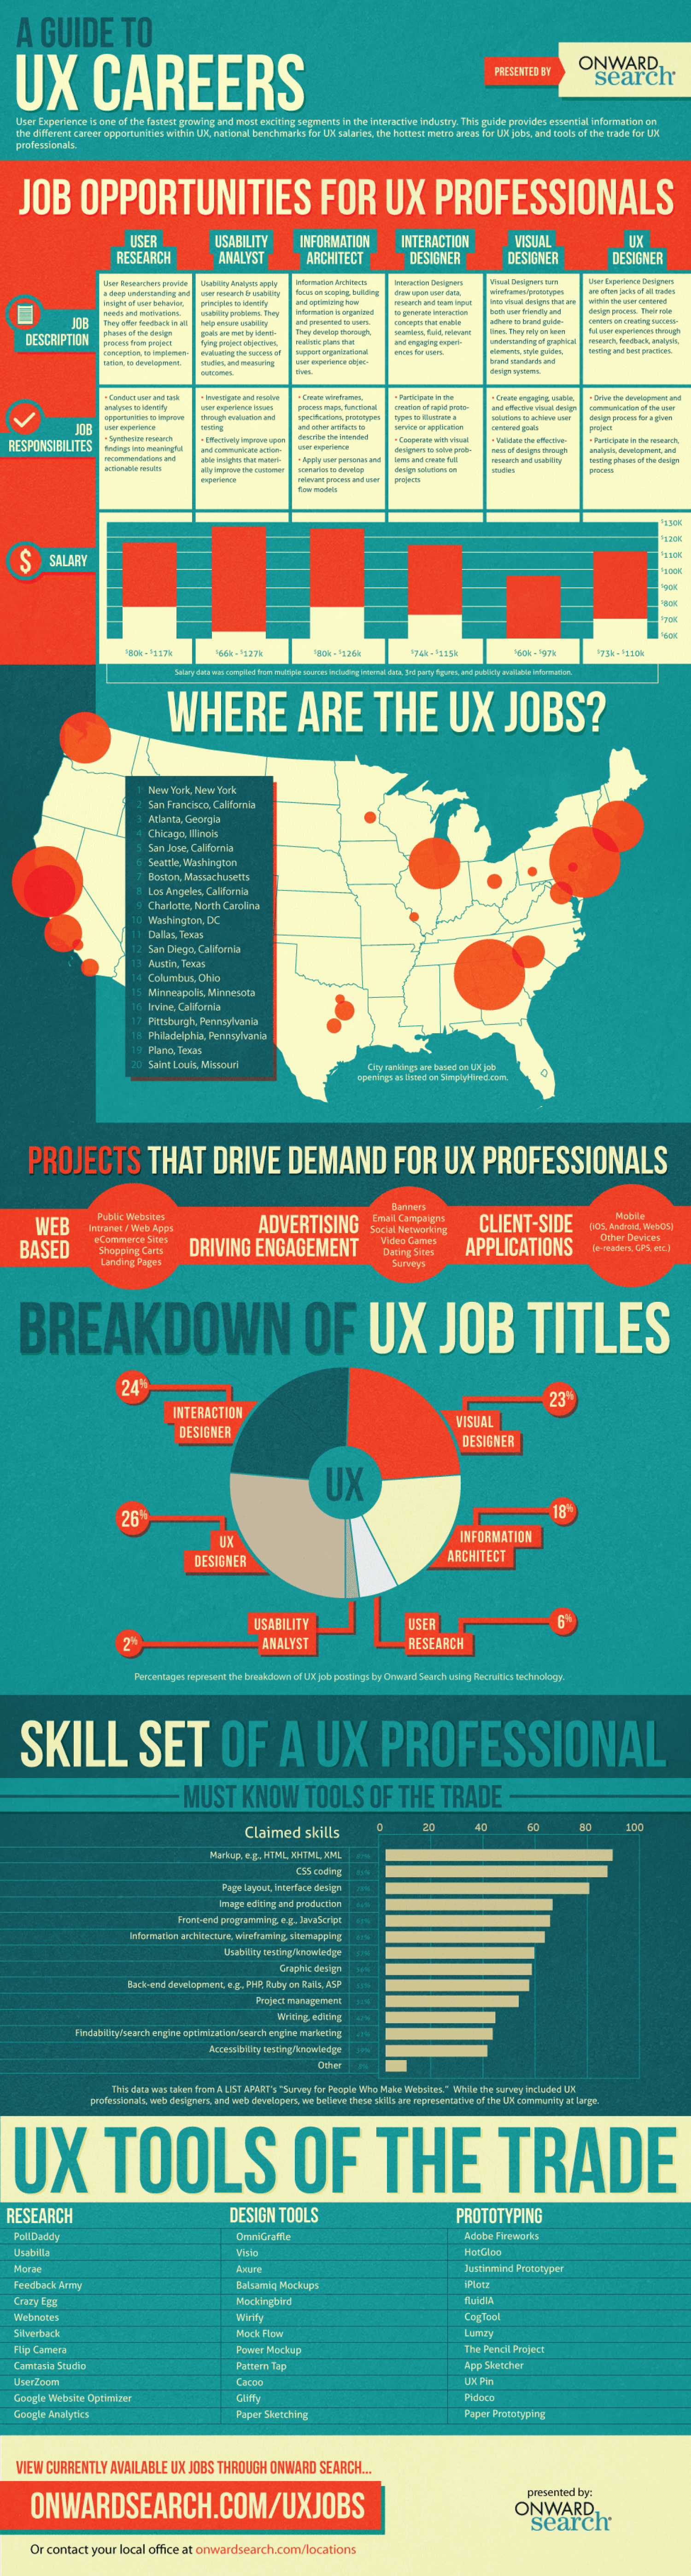 A Guide to UX Careers Infographic